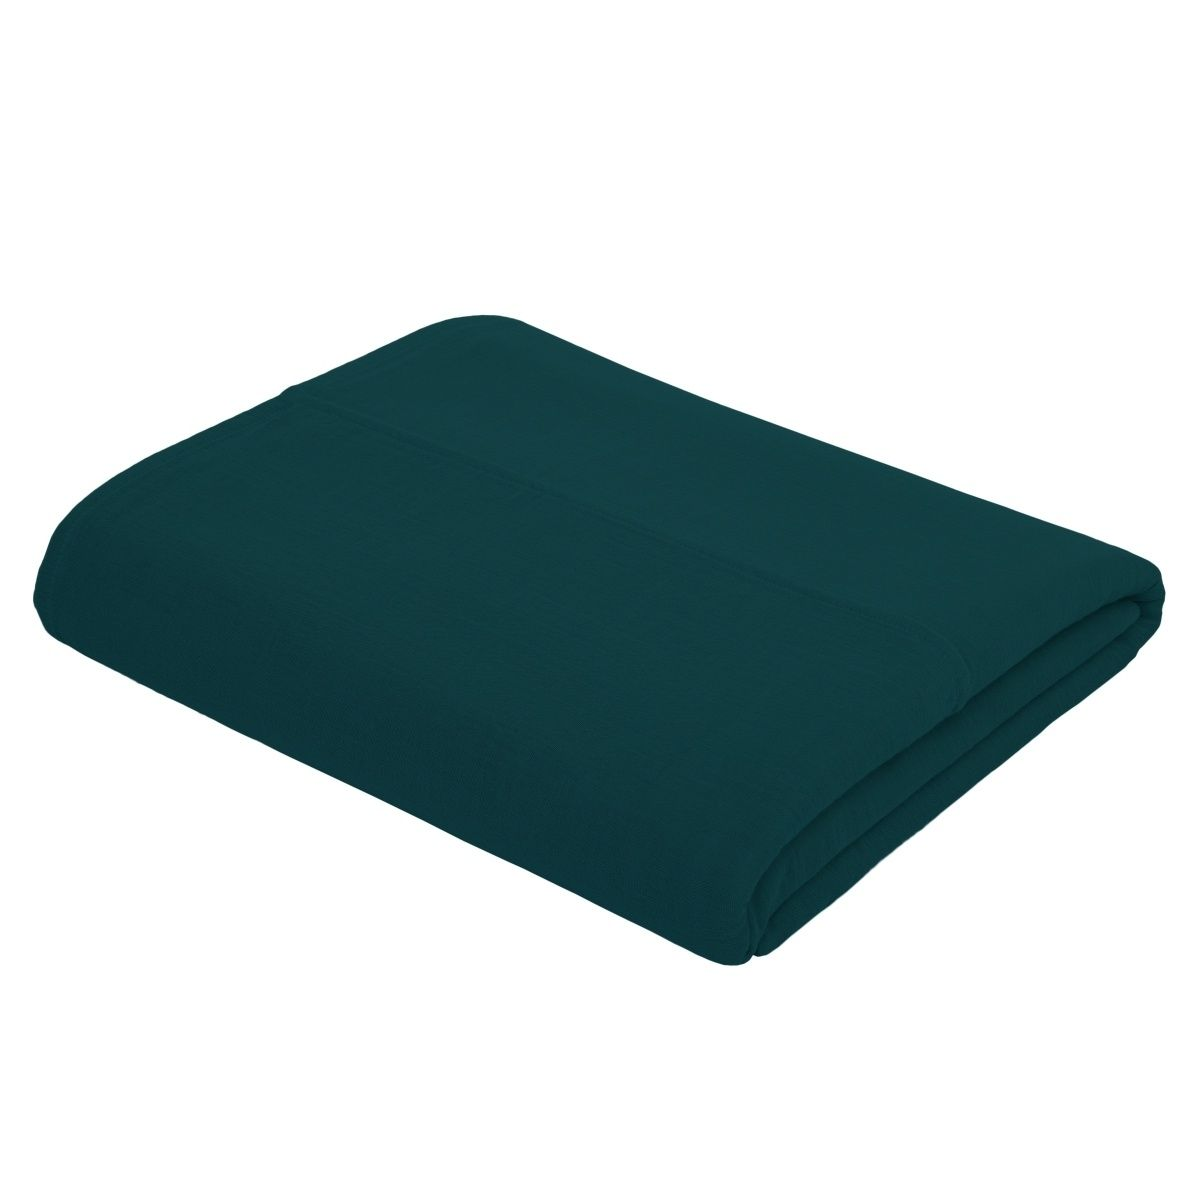 Numero 74 Top Flat Bed Sheet Plain teal blue